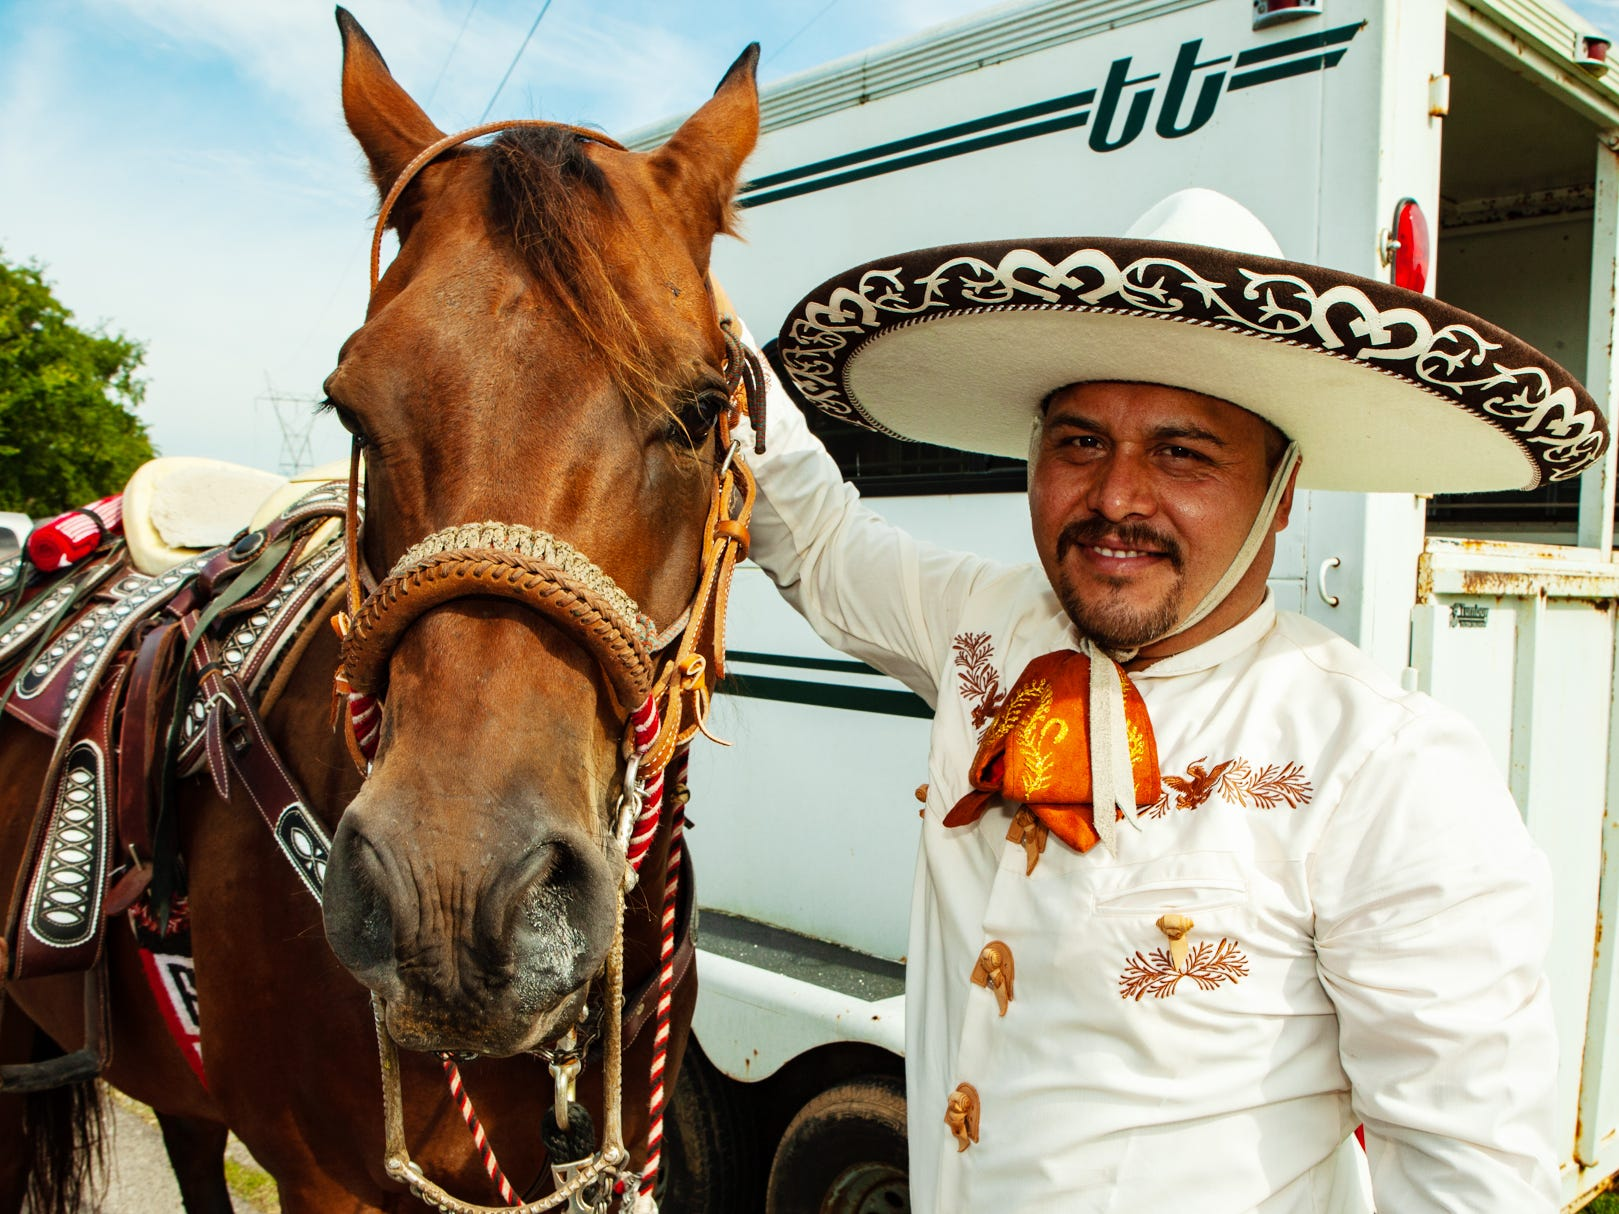 Vicente Fonseca with the La Erradura riding group of La Vergne prepares his horse, Brownie, for the 2018 Old Timer's Parade, held Saturday, Sept. 8.